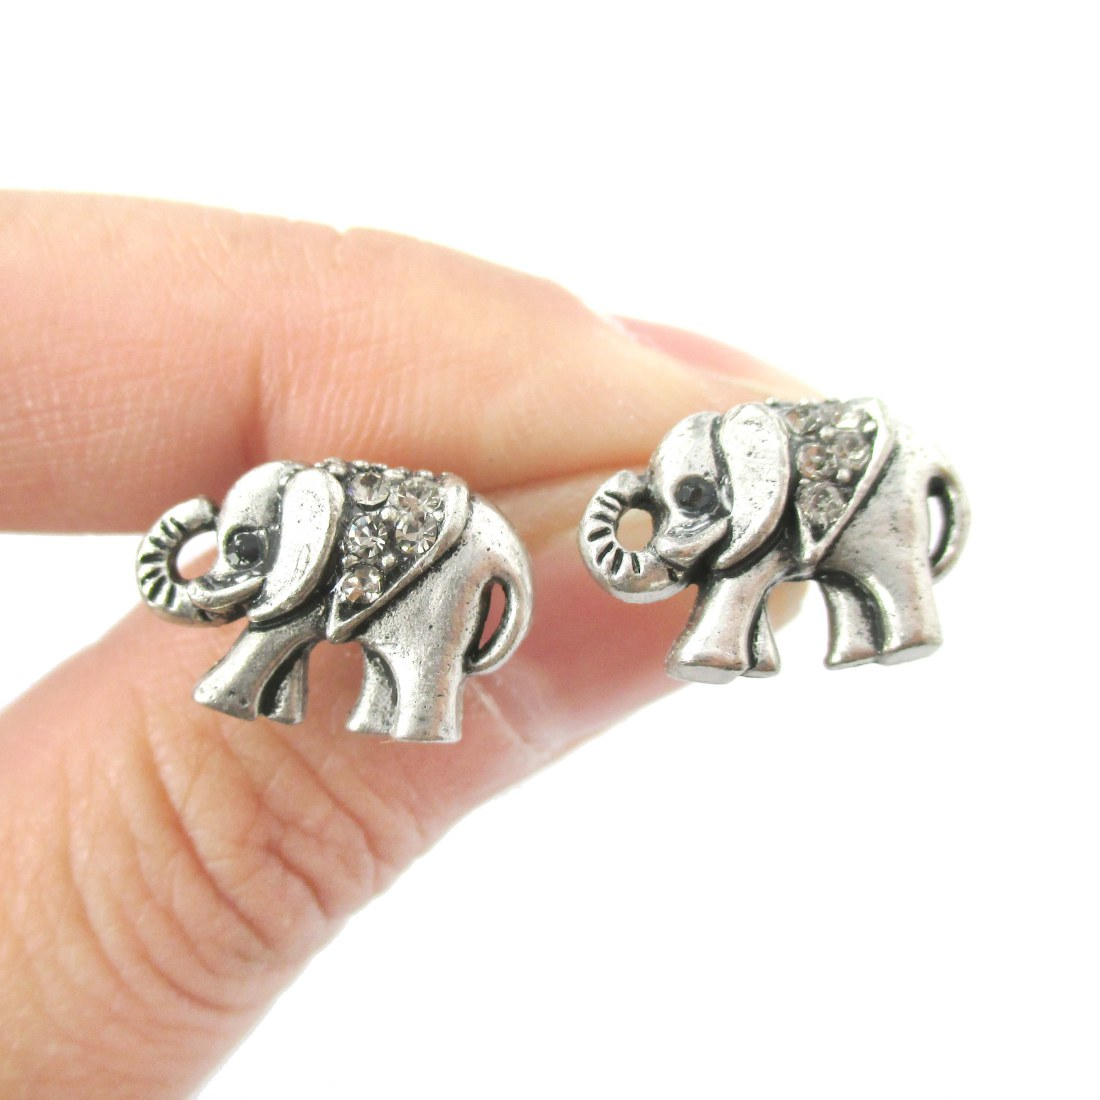 small elephant shaped animal stud earrings in silver with